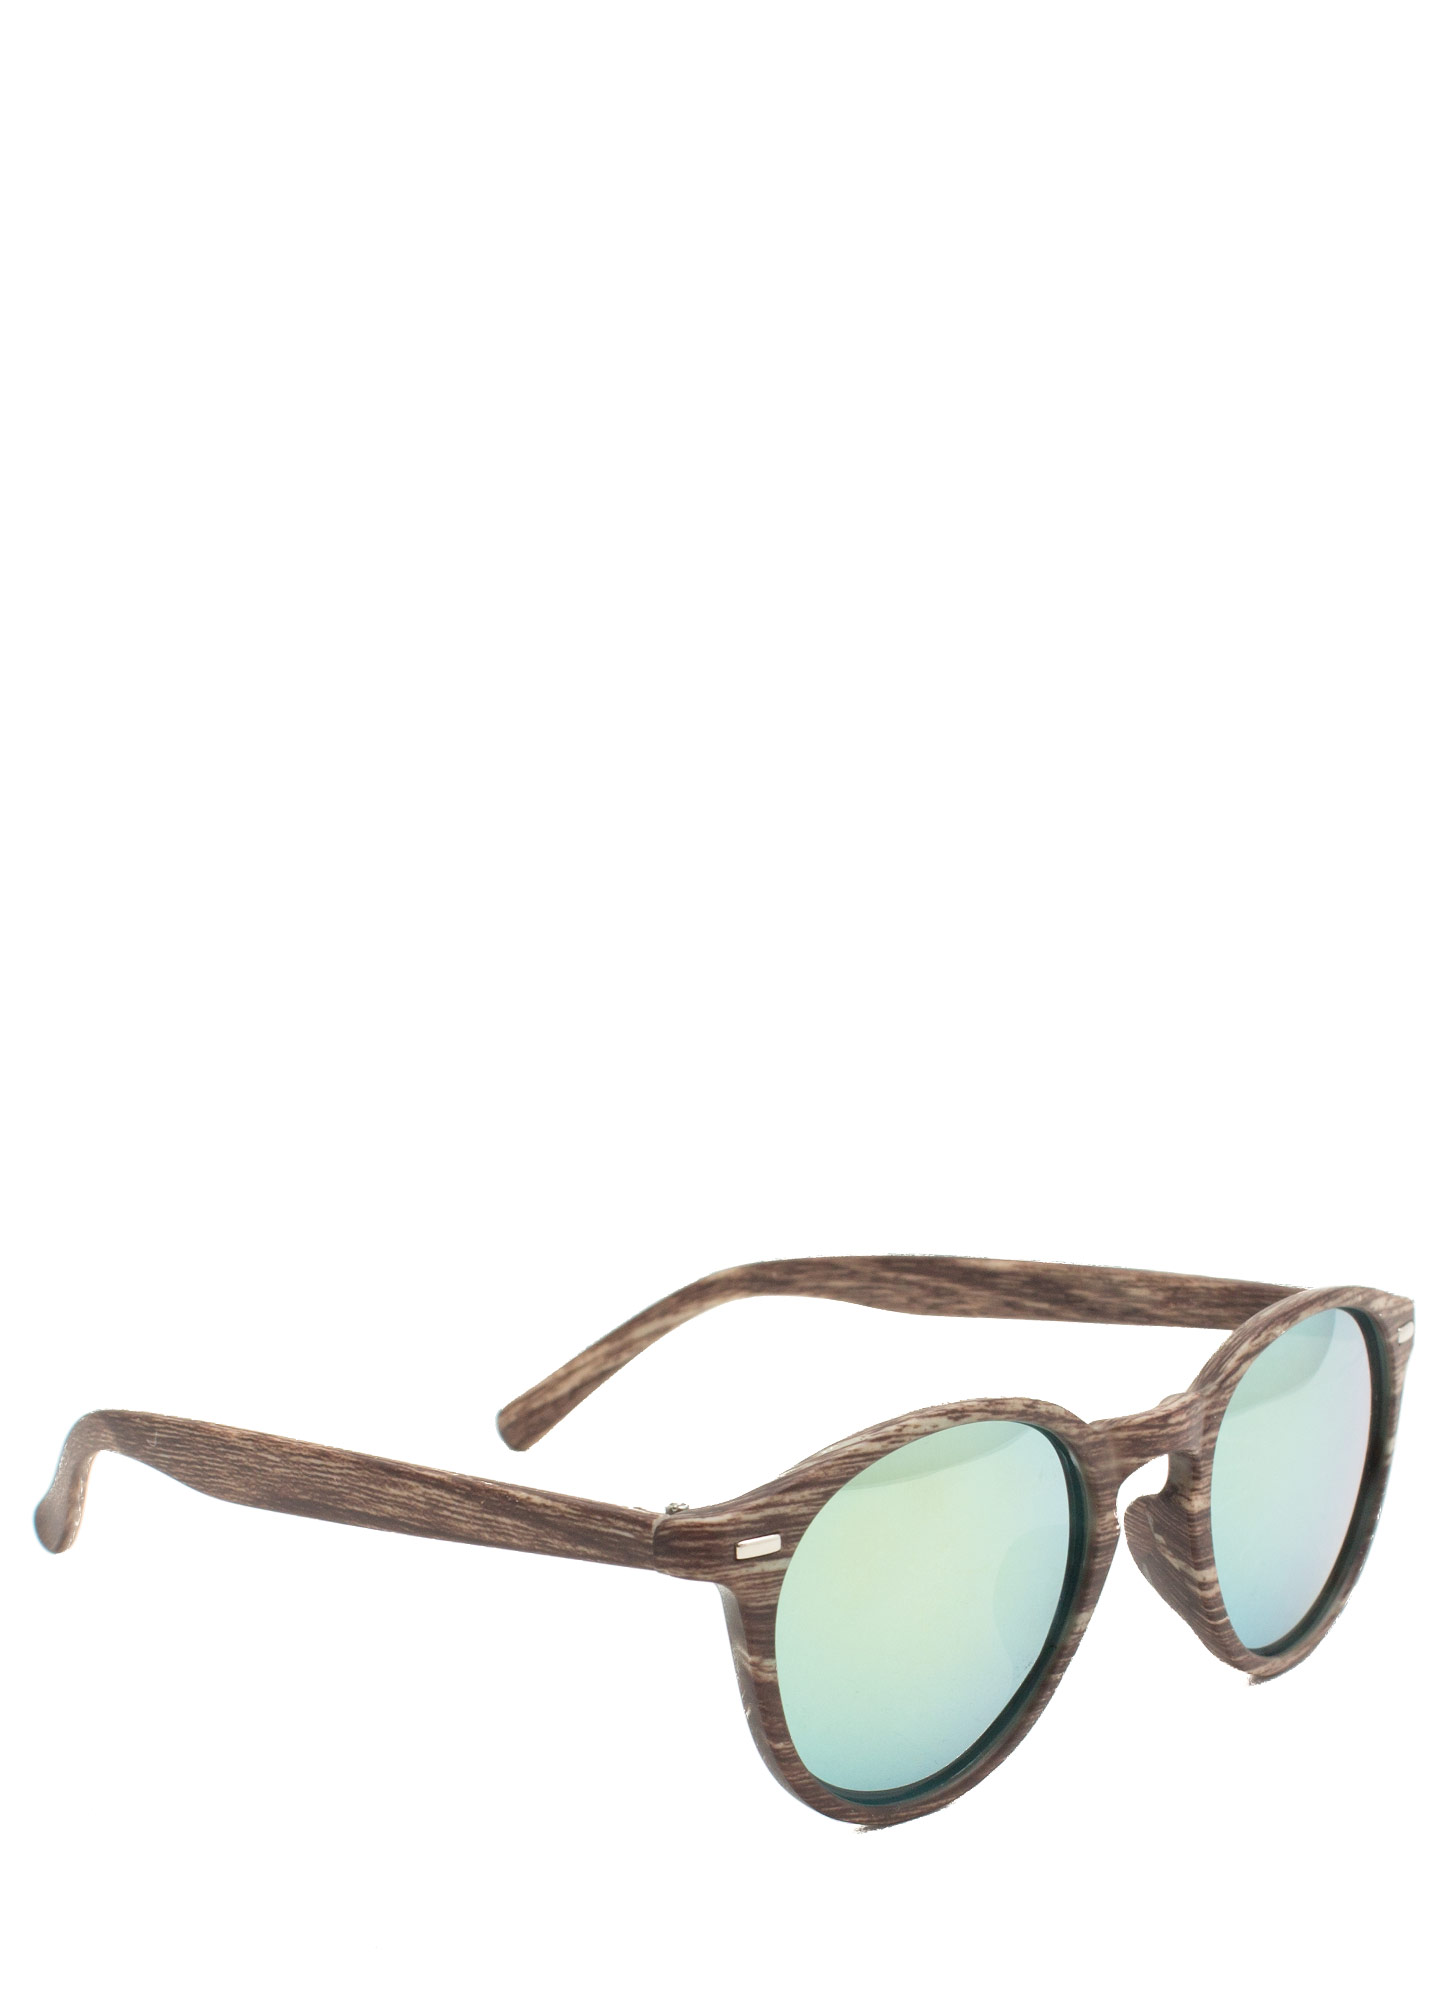 Wood Finish Reflective Sunglasses OLIVEBROWN